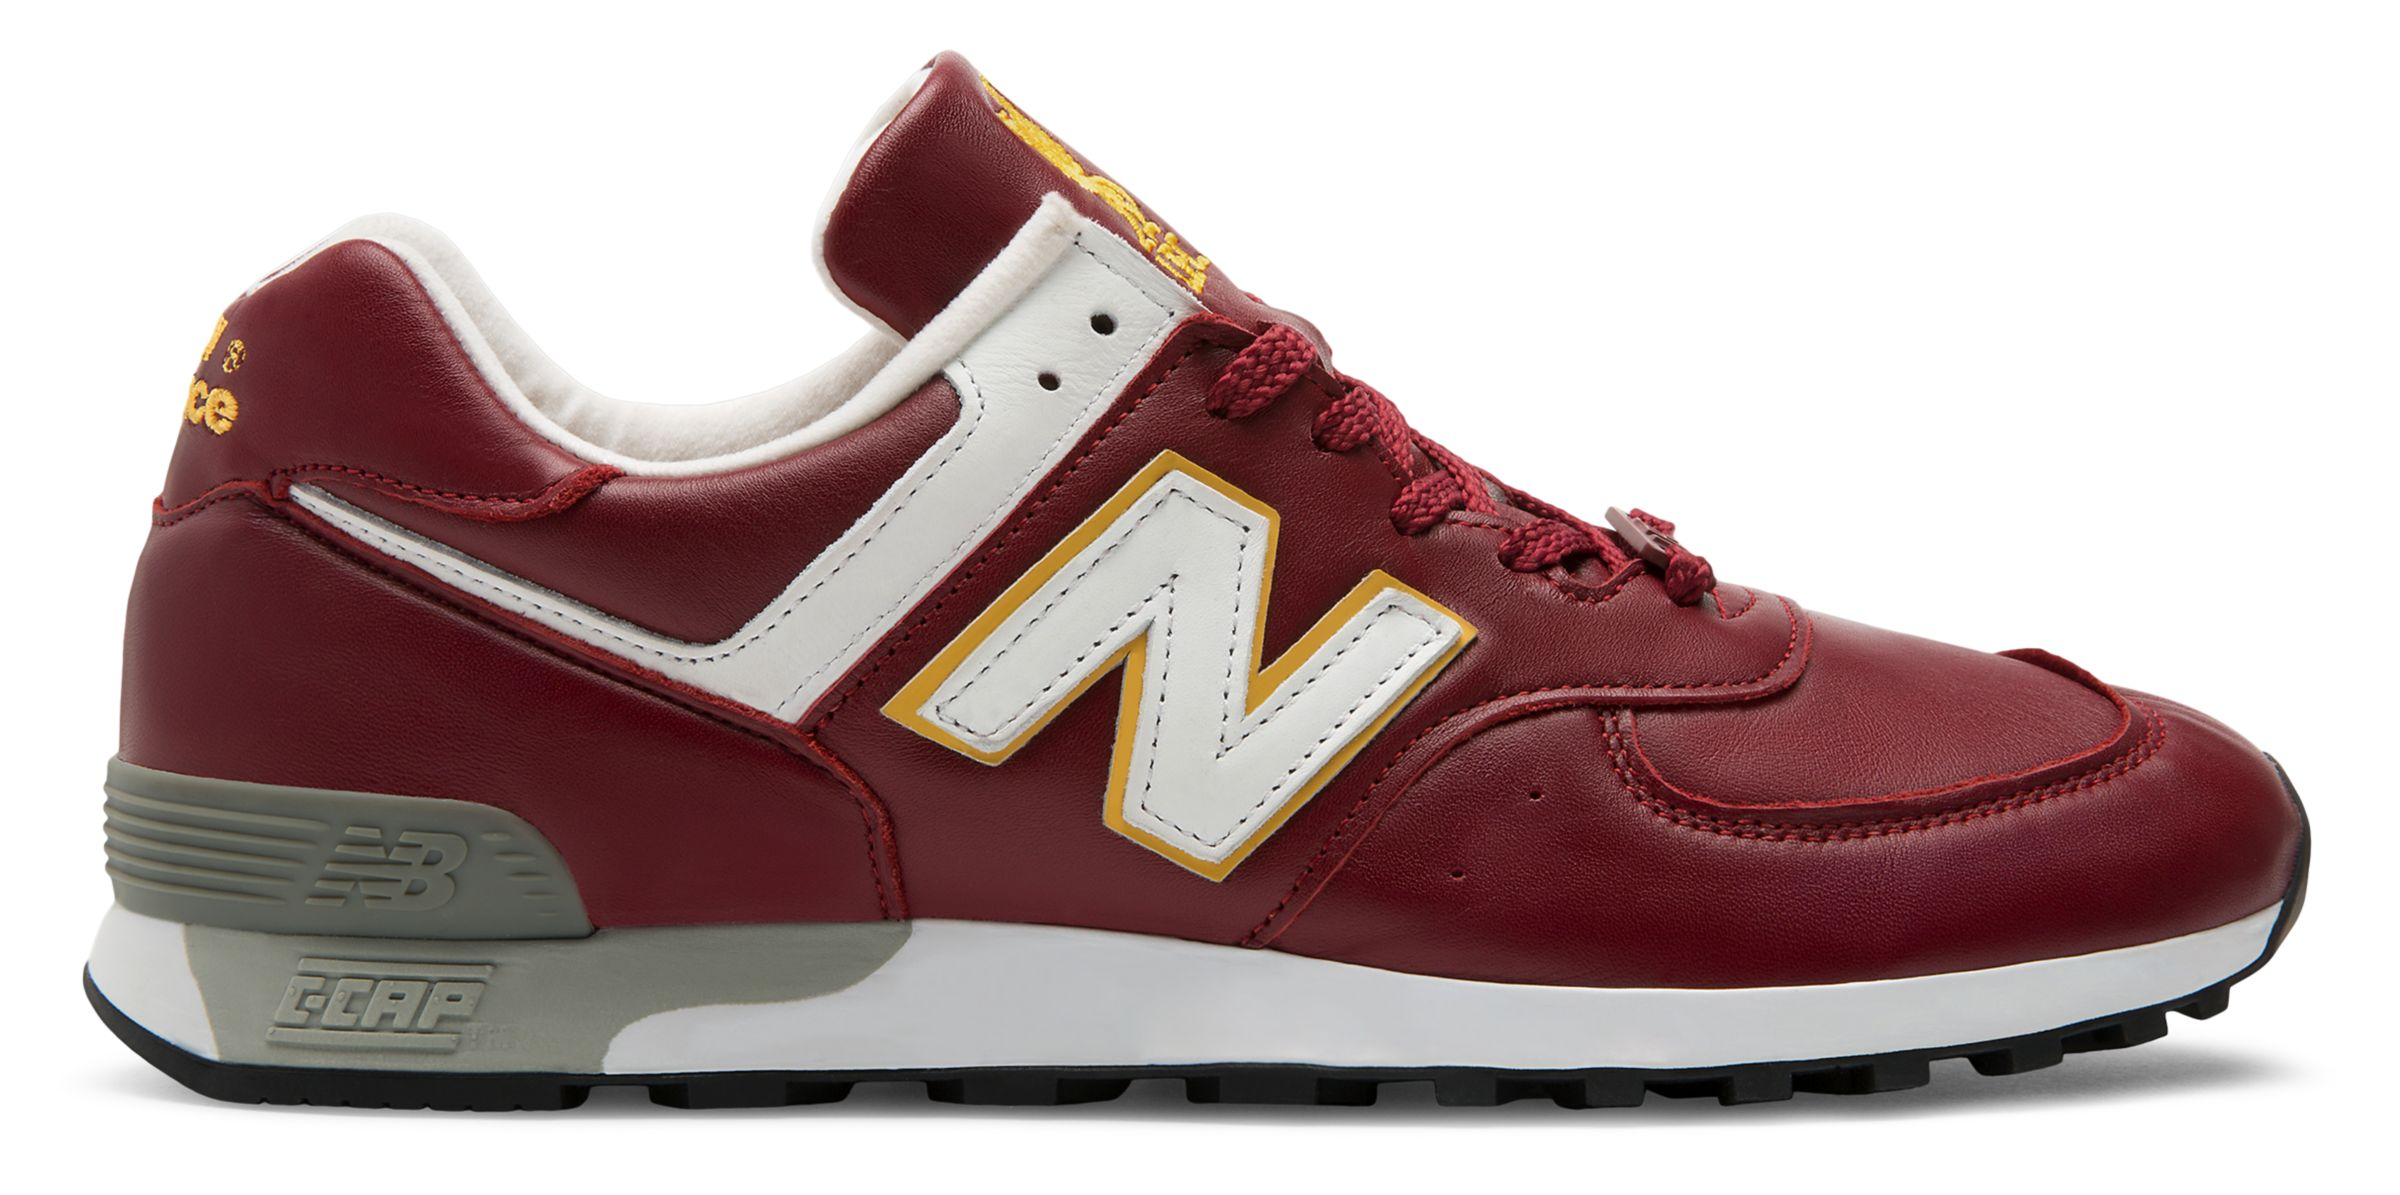 NB 576 Made in UK LFC, Burgundy with Yellow & White